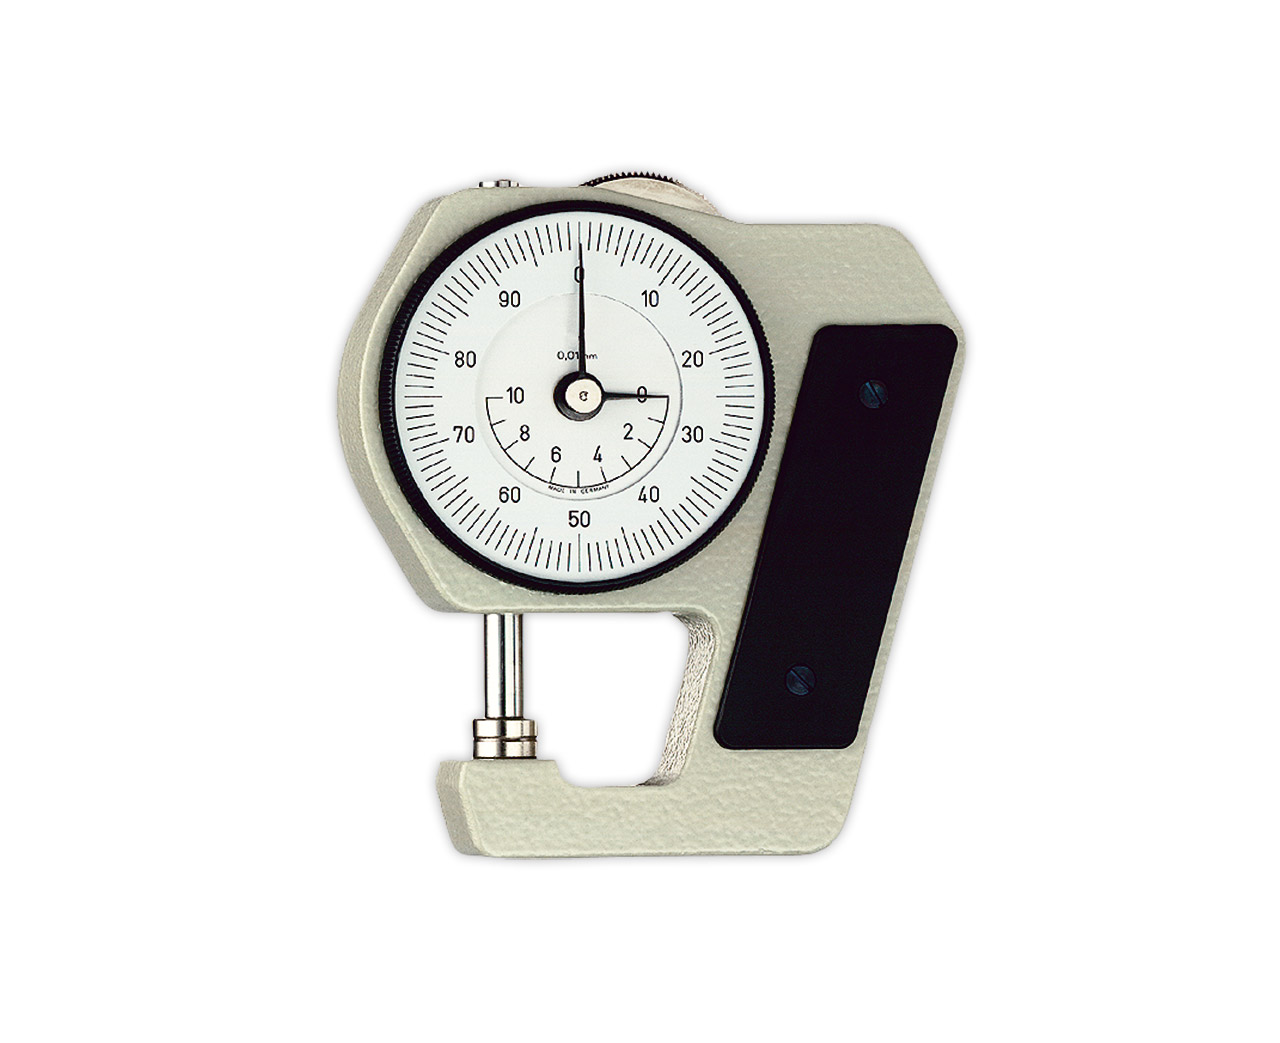 Thickness Gauge J-15 with high resolution - Hans Schmidt